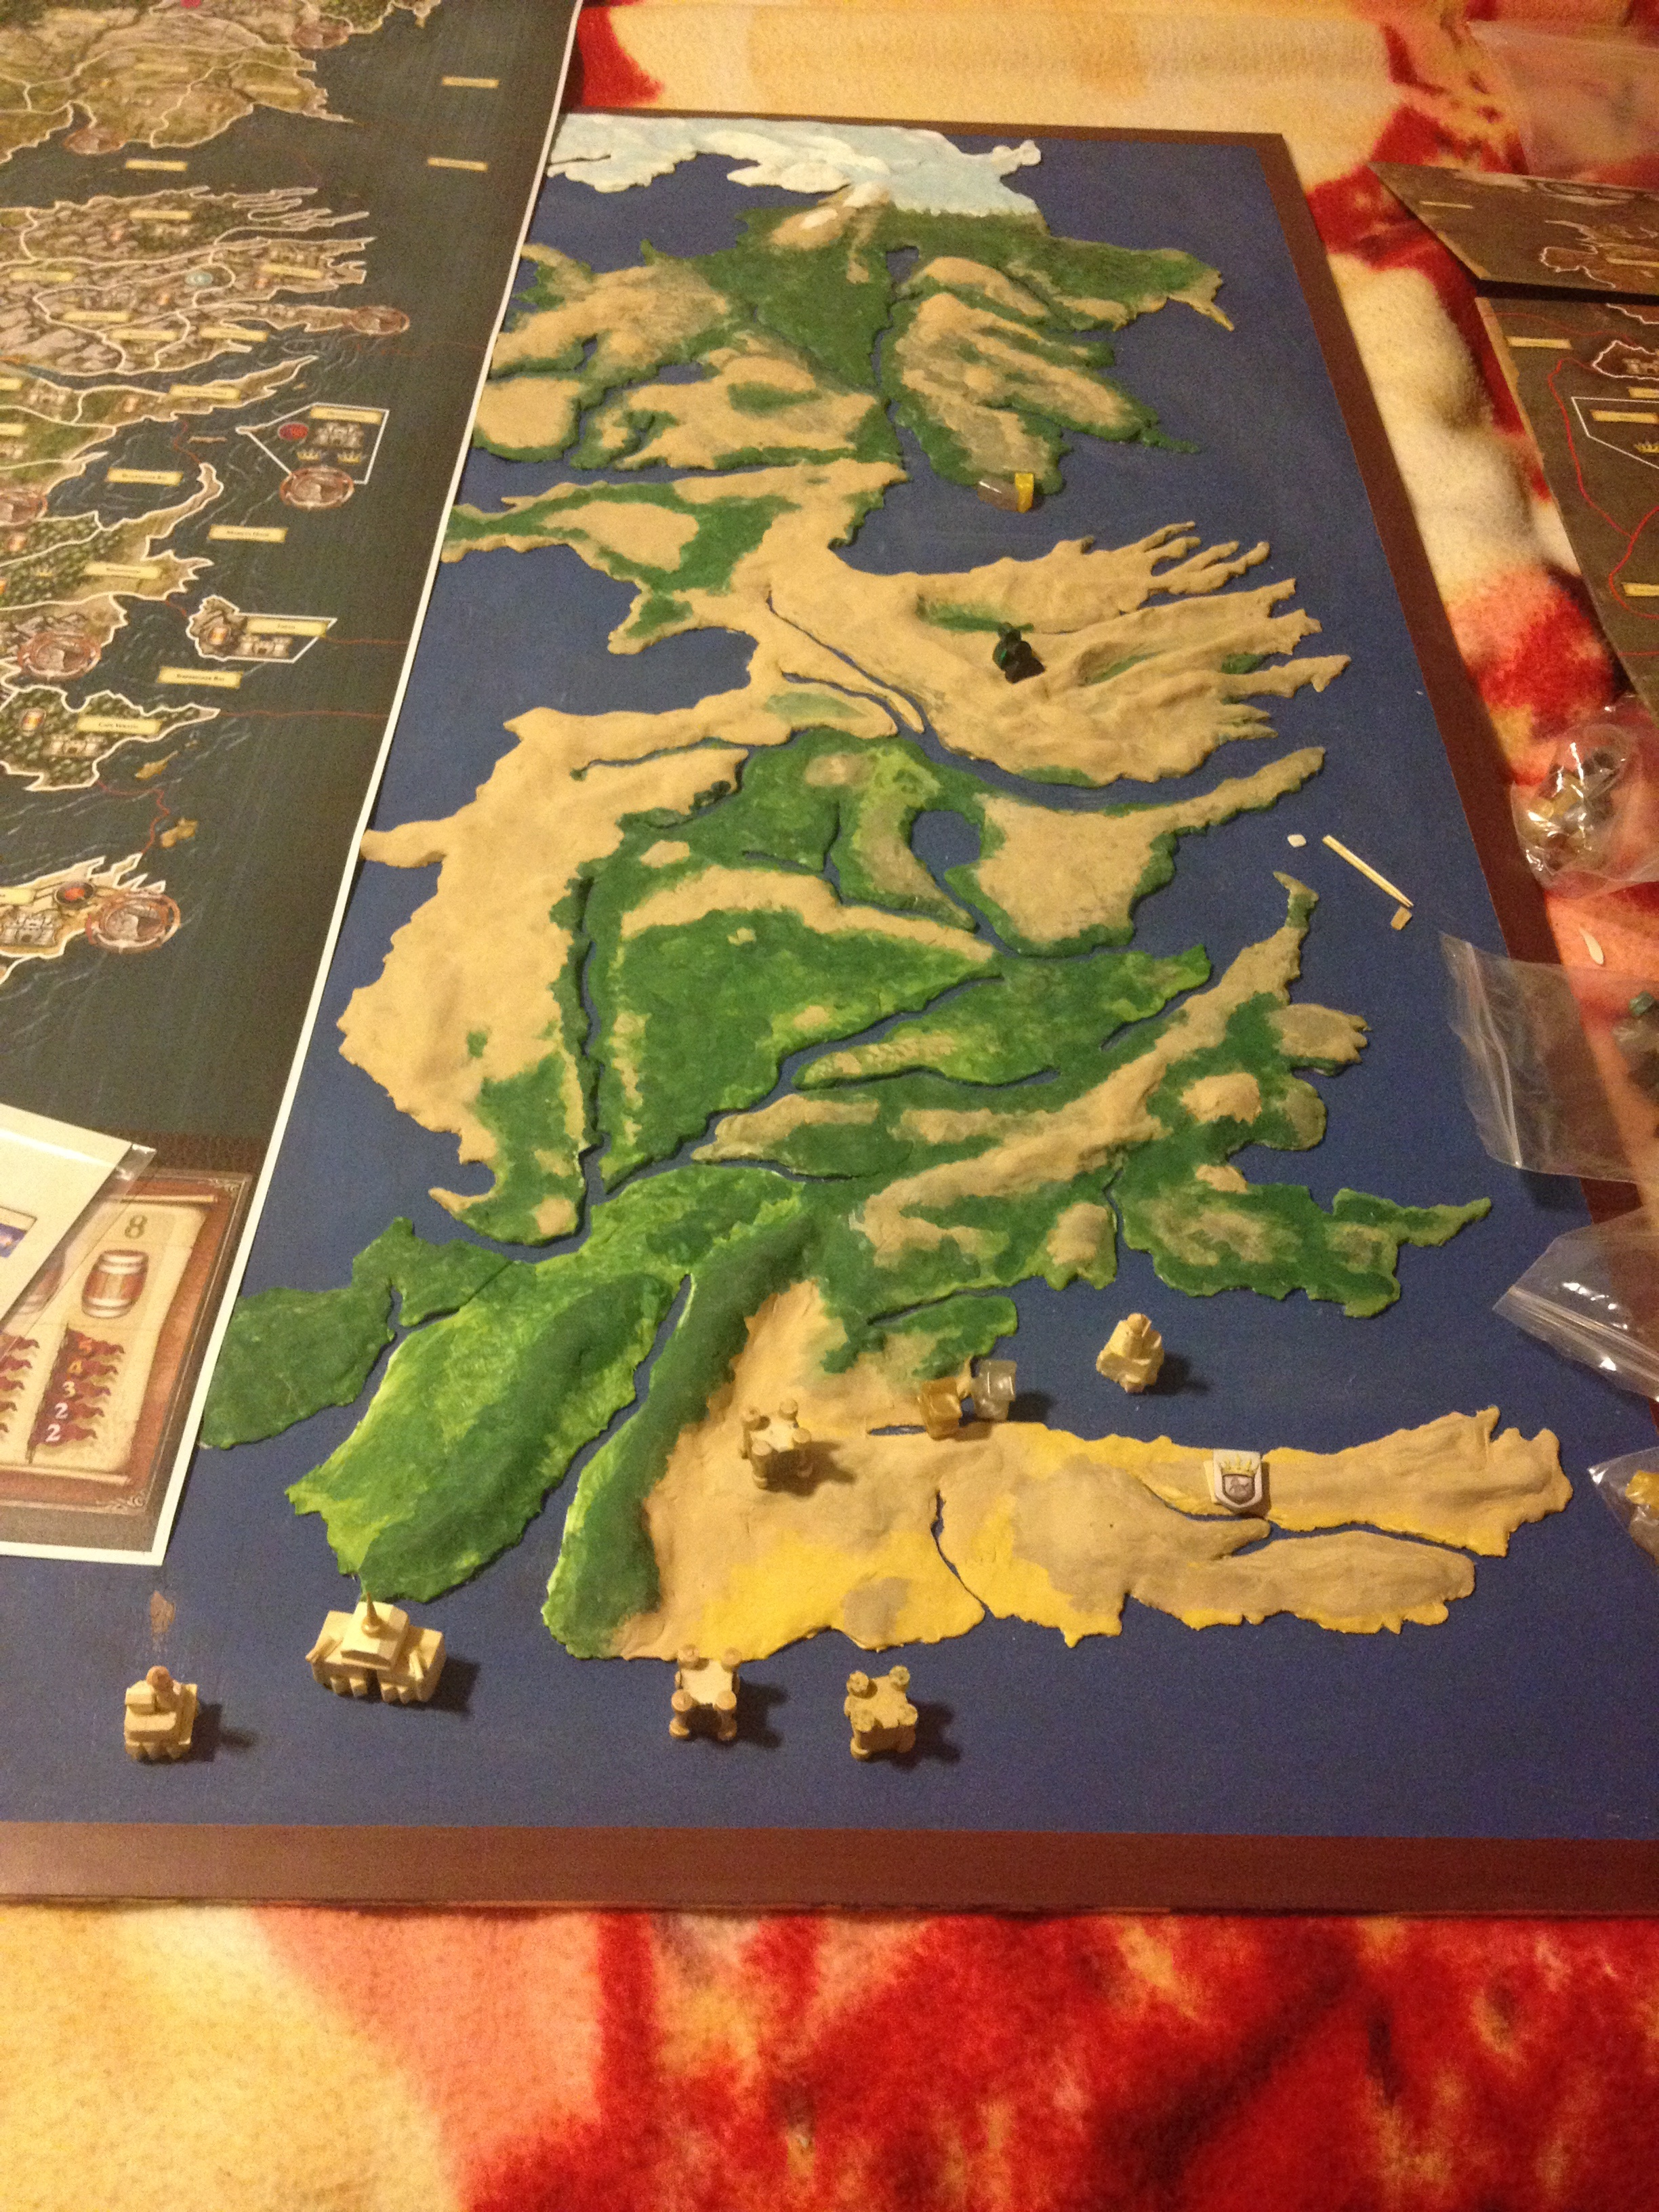 3D Map of the 9 Player Game of Thrones Board GameEnter-there Game Of Thrones Board Map on downton abbey map, star trek map, justified map, world map, spooksville map, walking dead map, jersey shore map, narnia map, bloodline map, a storm of swords map, dallas map, clash of kings map, gendry map, jericho map, camelot map, winterfell map, got map, valyria map, qarth map, guild wars 2 map,